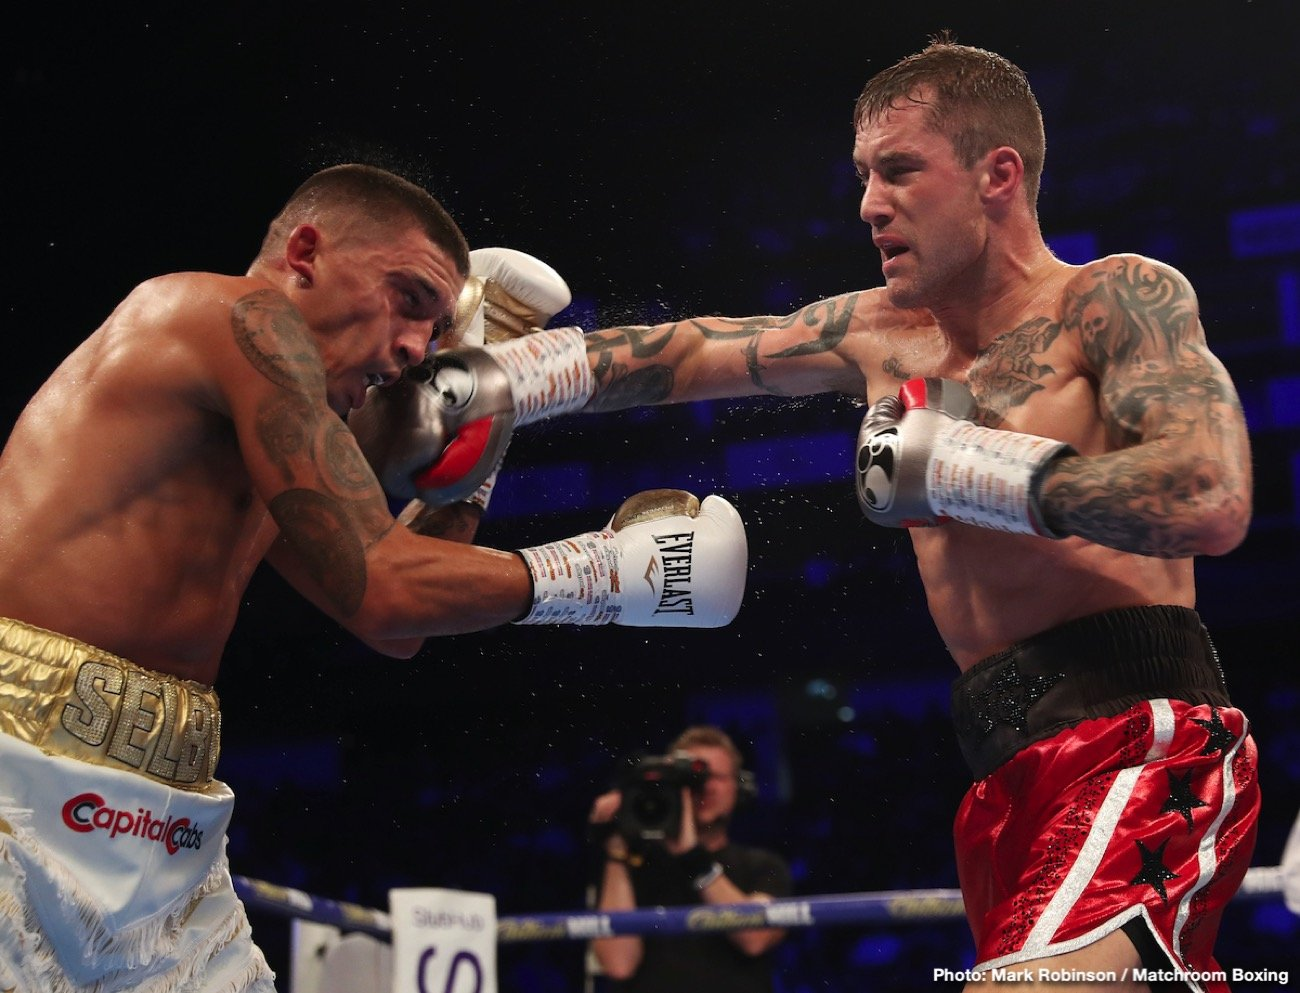 Lee Selby - Tonight on the big O2 show in London, former champions Lee Selby and Ricky Burns clashed in a lightweight bout that turned out to be very much a clash of styles. Messy at times, with plenty of holding, holding and hitting and with both men frequently looking at the referee, the fight failed to catch fire.